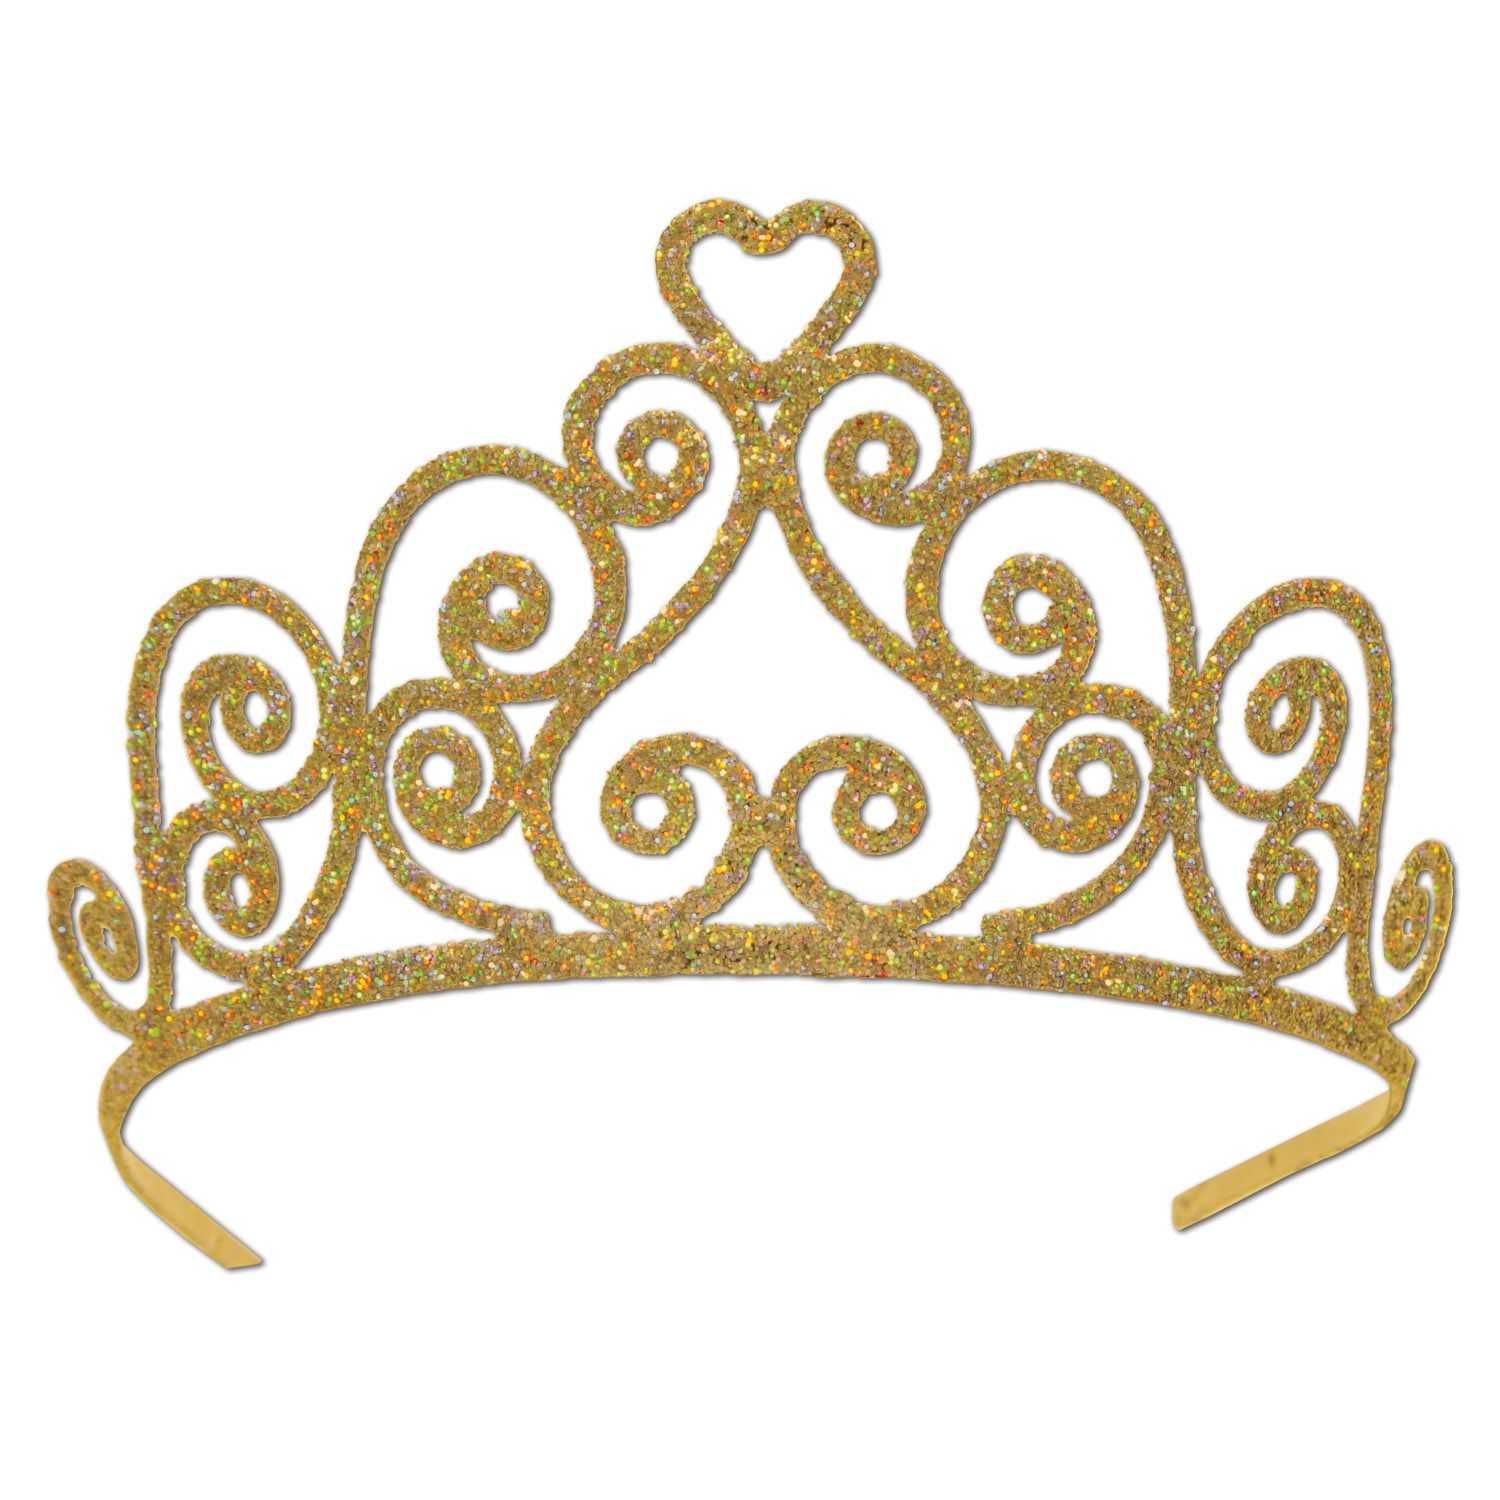 Gold tiara clipart 3 » Clipart Station.